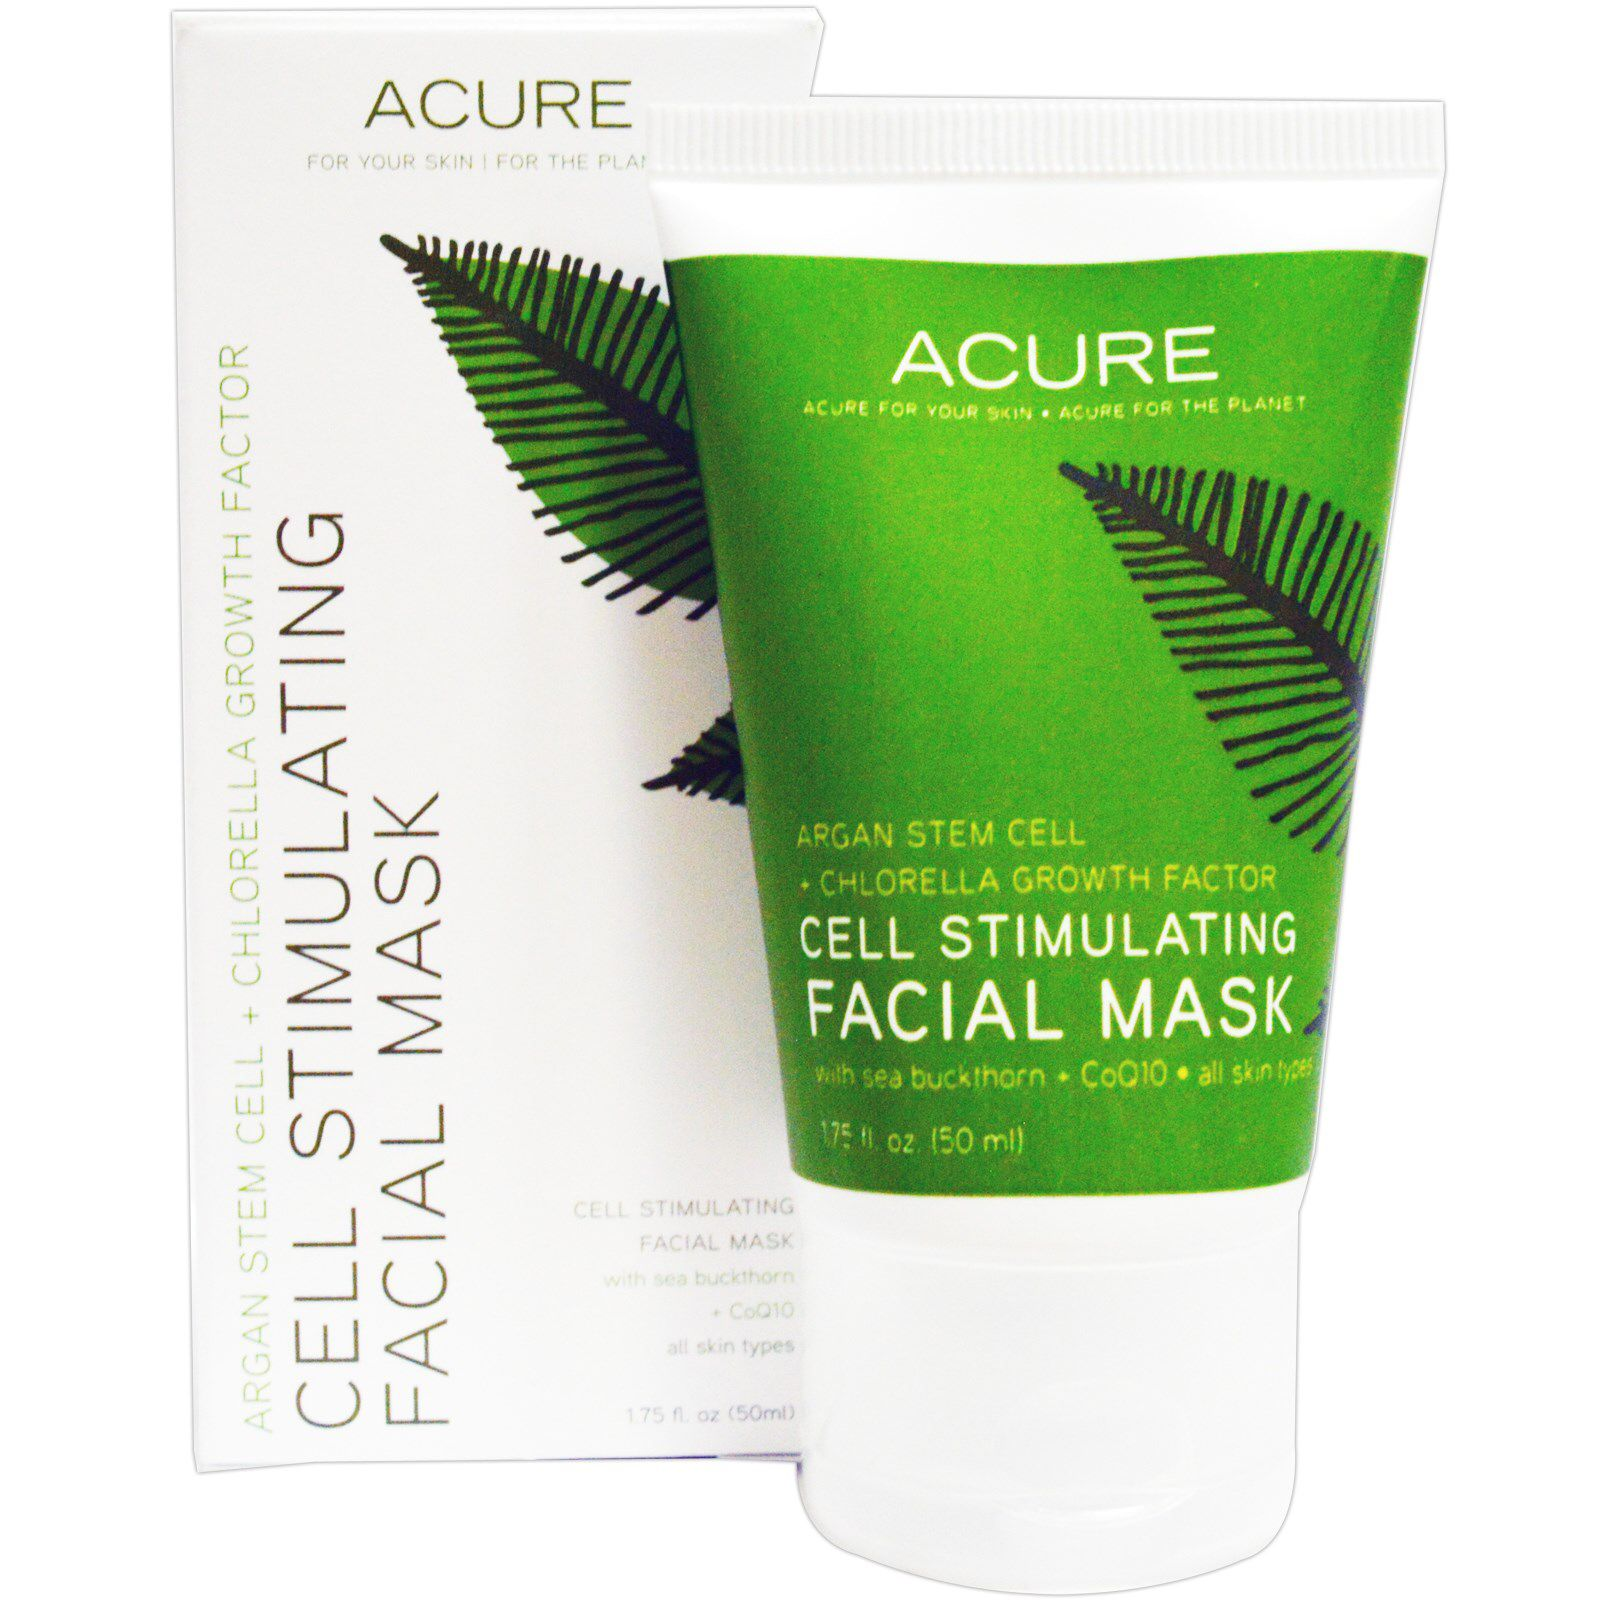 Acure Cell Stimulating Facial Mask 1 Oz